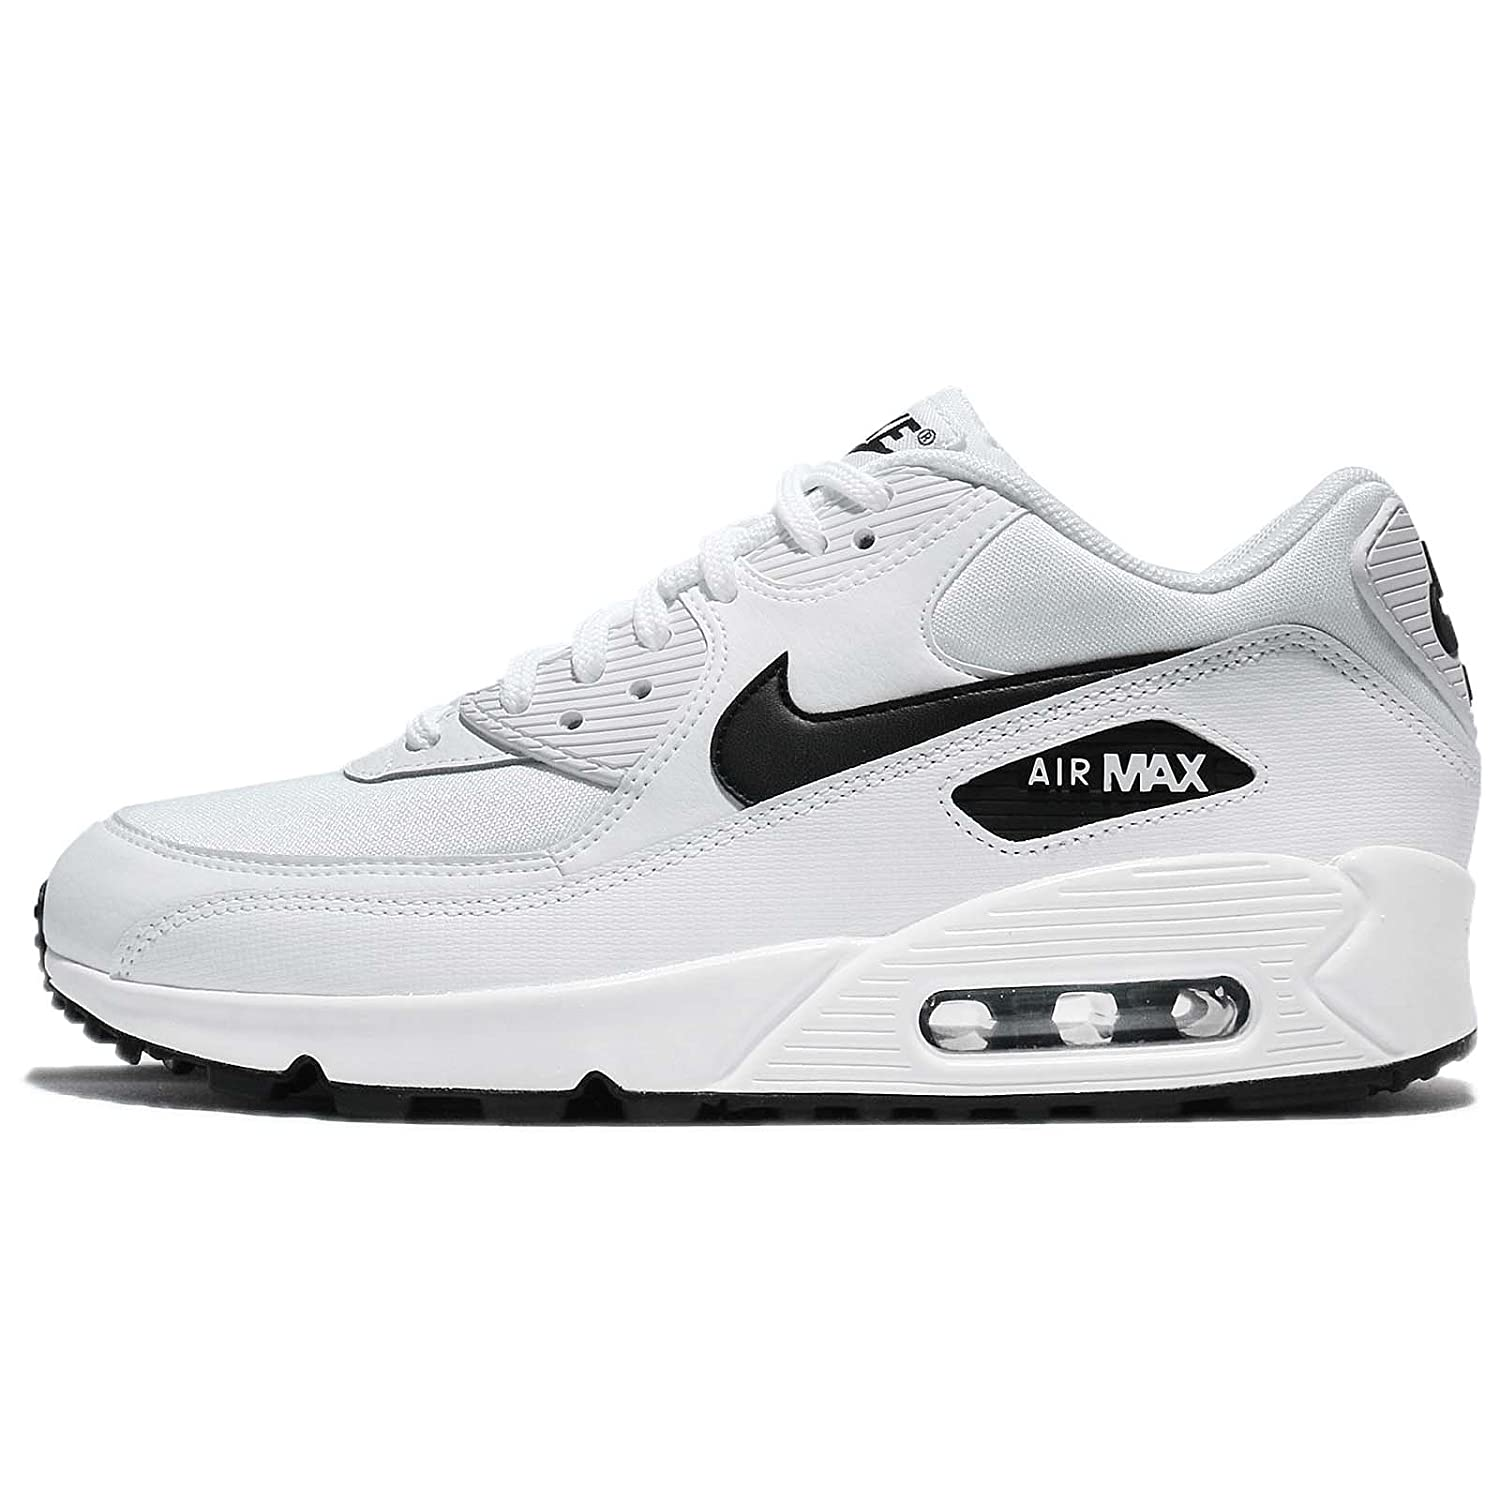 NIKE WMNS Sneakers Air Max 90, Sneakers (White/Black Basses 131) Femme Blanc (White/Black 131) e3c68a5 - automaticcouplings.space